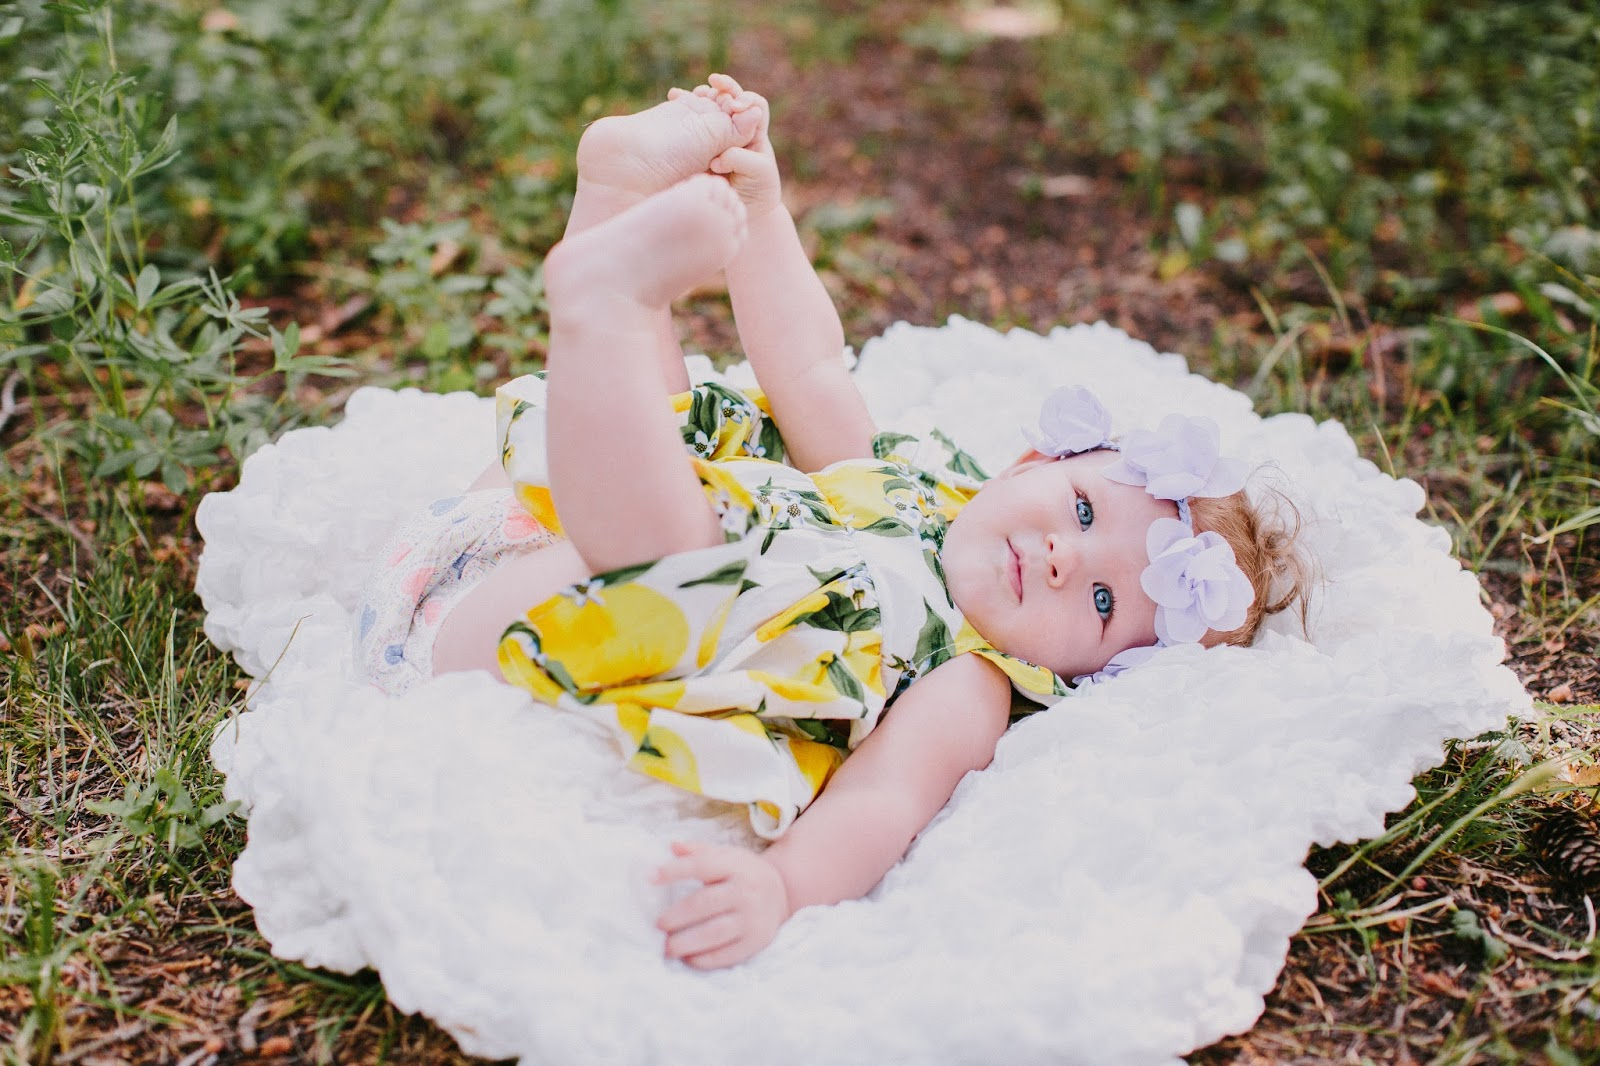 Lunabybaby, Cute Baby, Floral Crown Baby